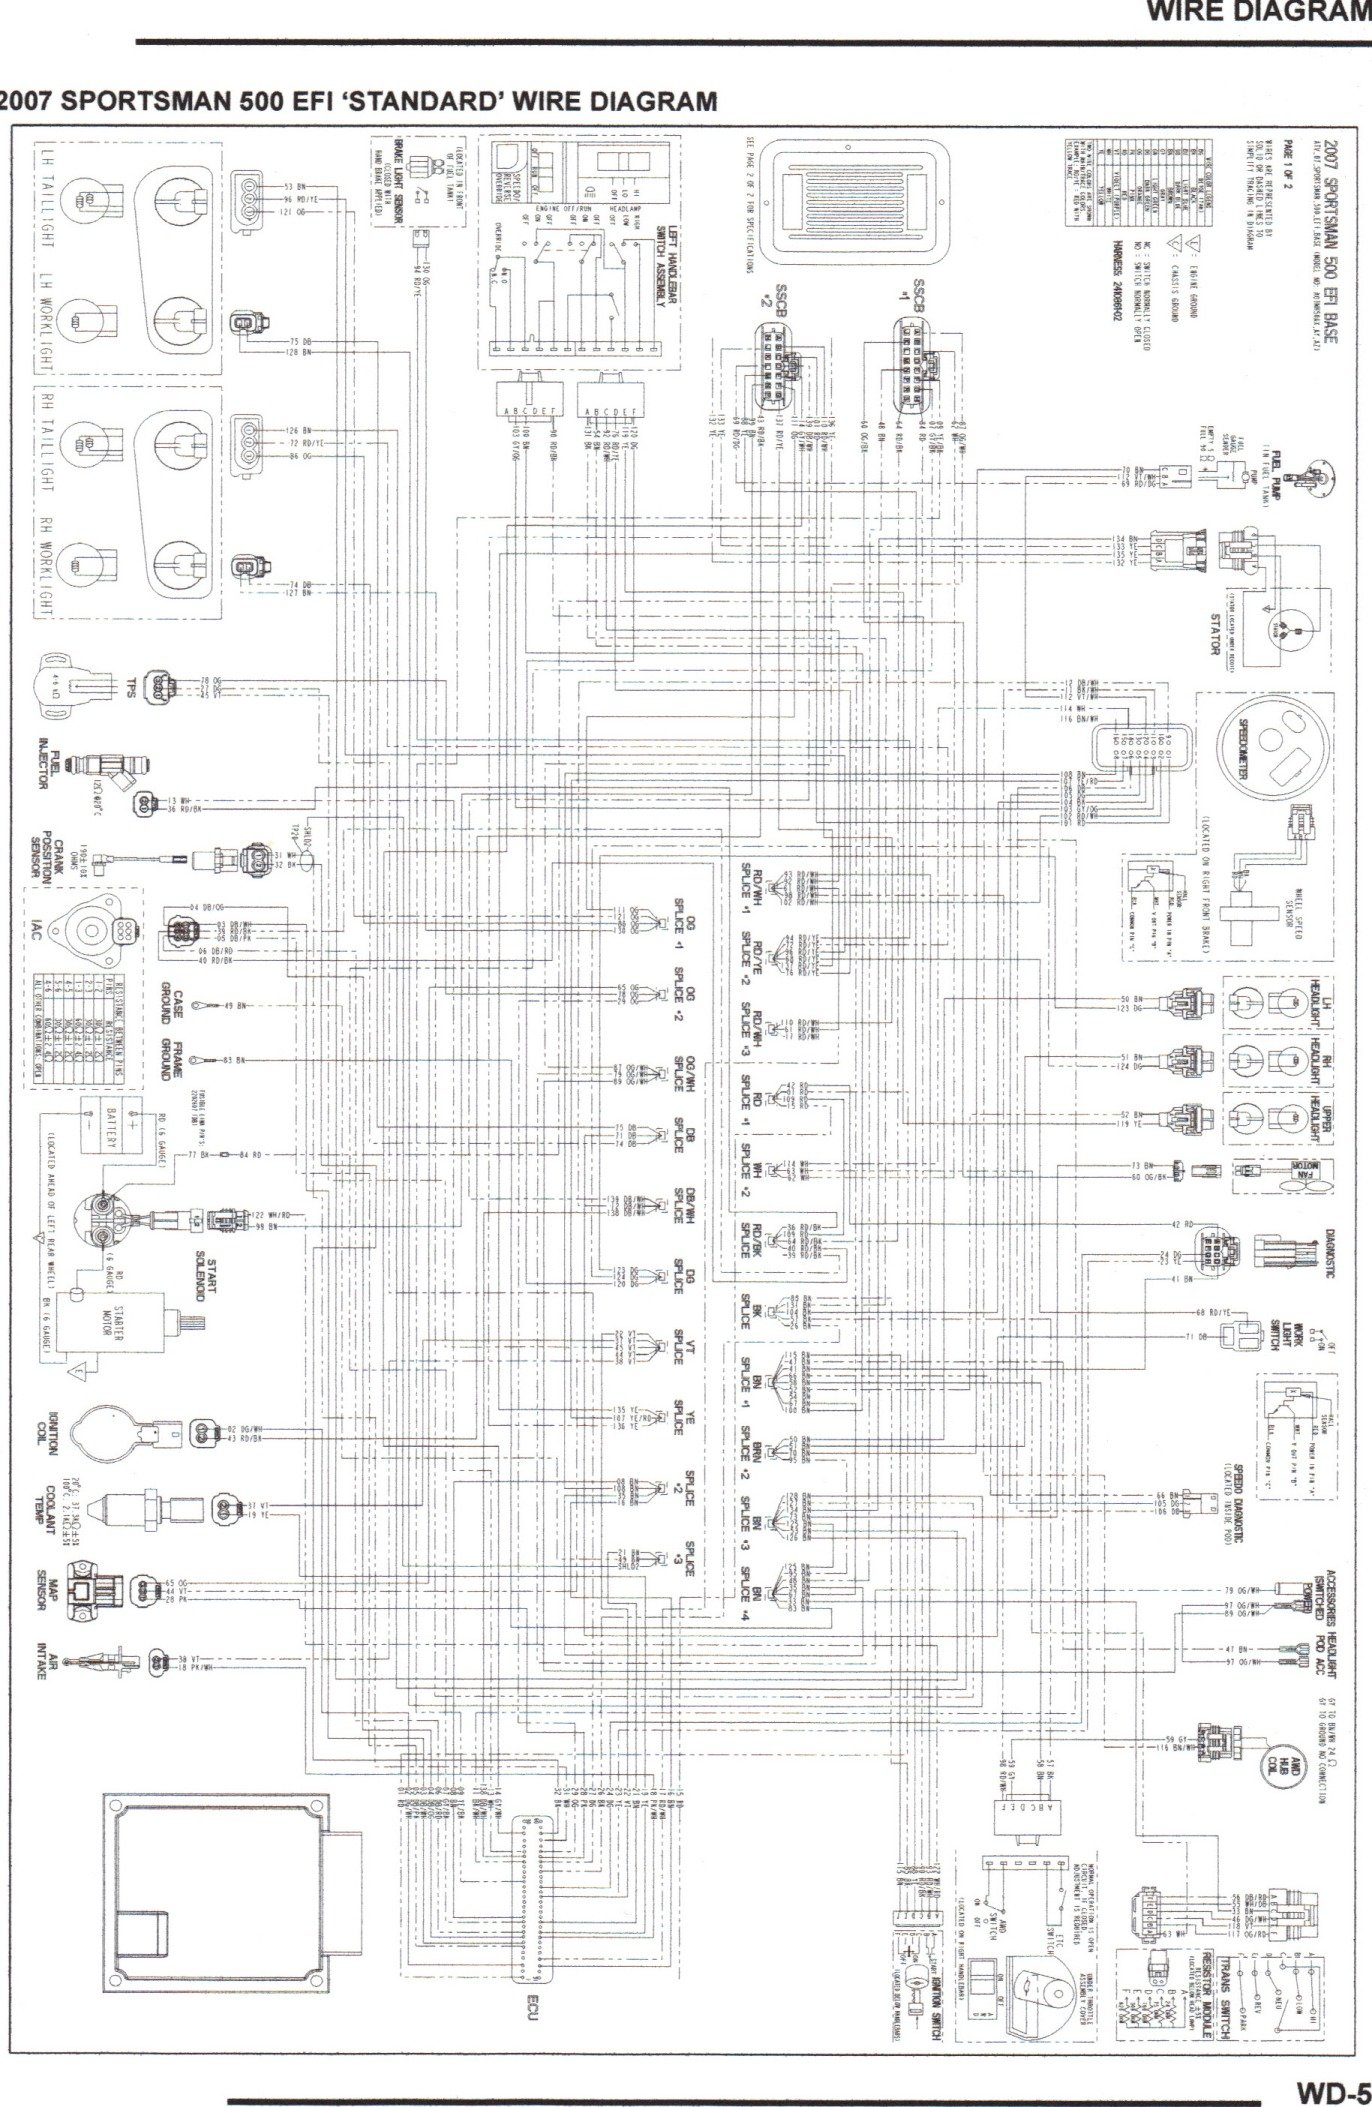 2011 04 02_165302_2010 06 22_205919_500_efi_wiring_diagram polaris predator 90 wiring diagram polaris 90 service manual 2000 polaris scrambler 500 wiring diagram at creativeand.co